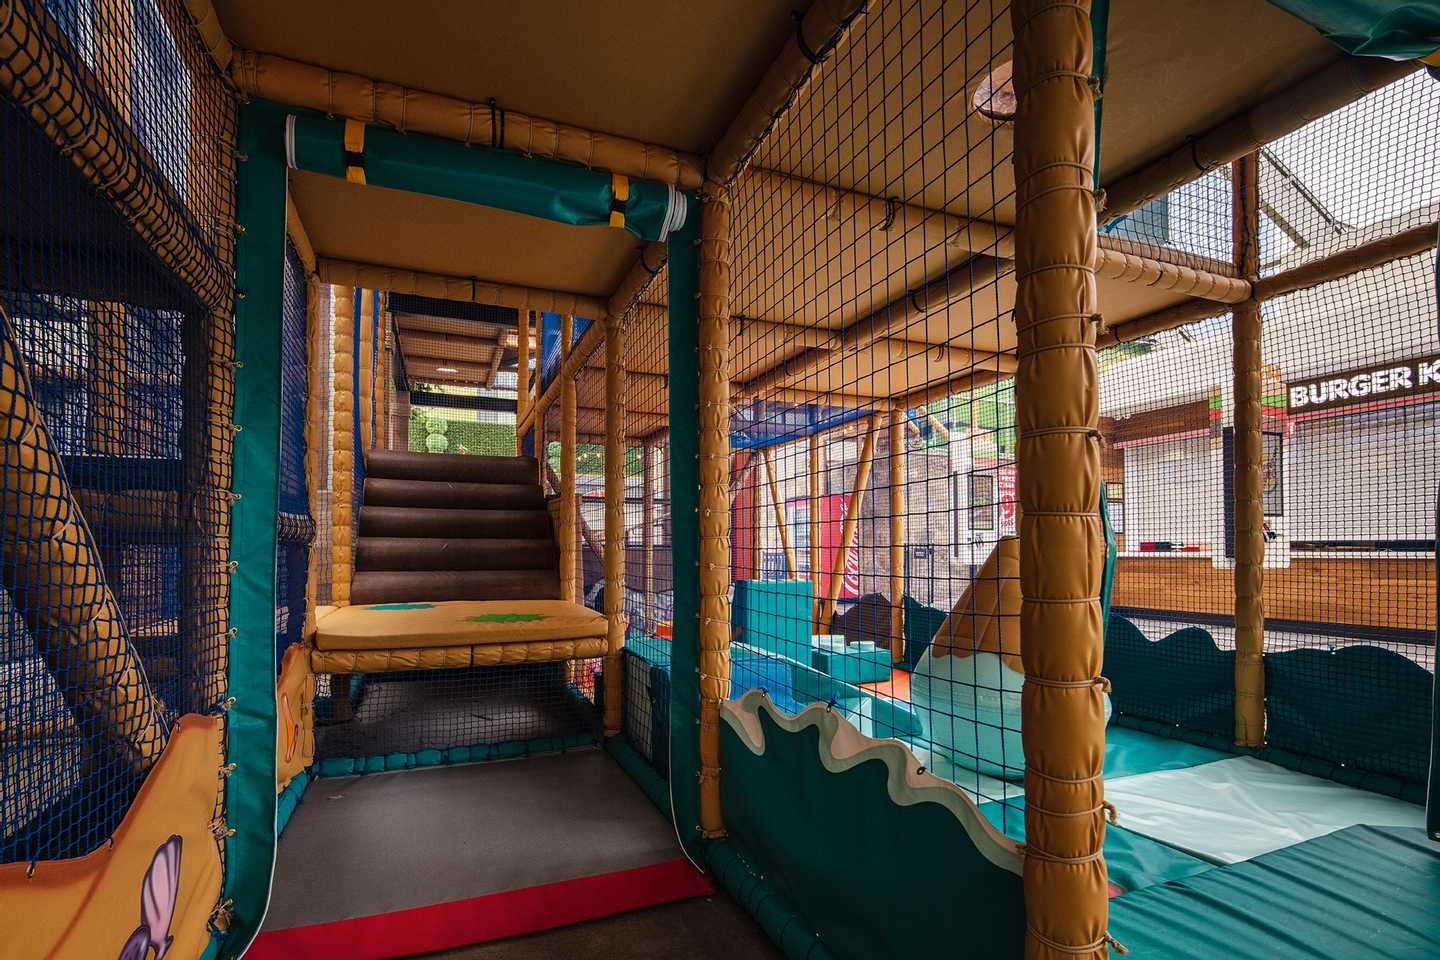 The indoor soft play area